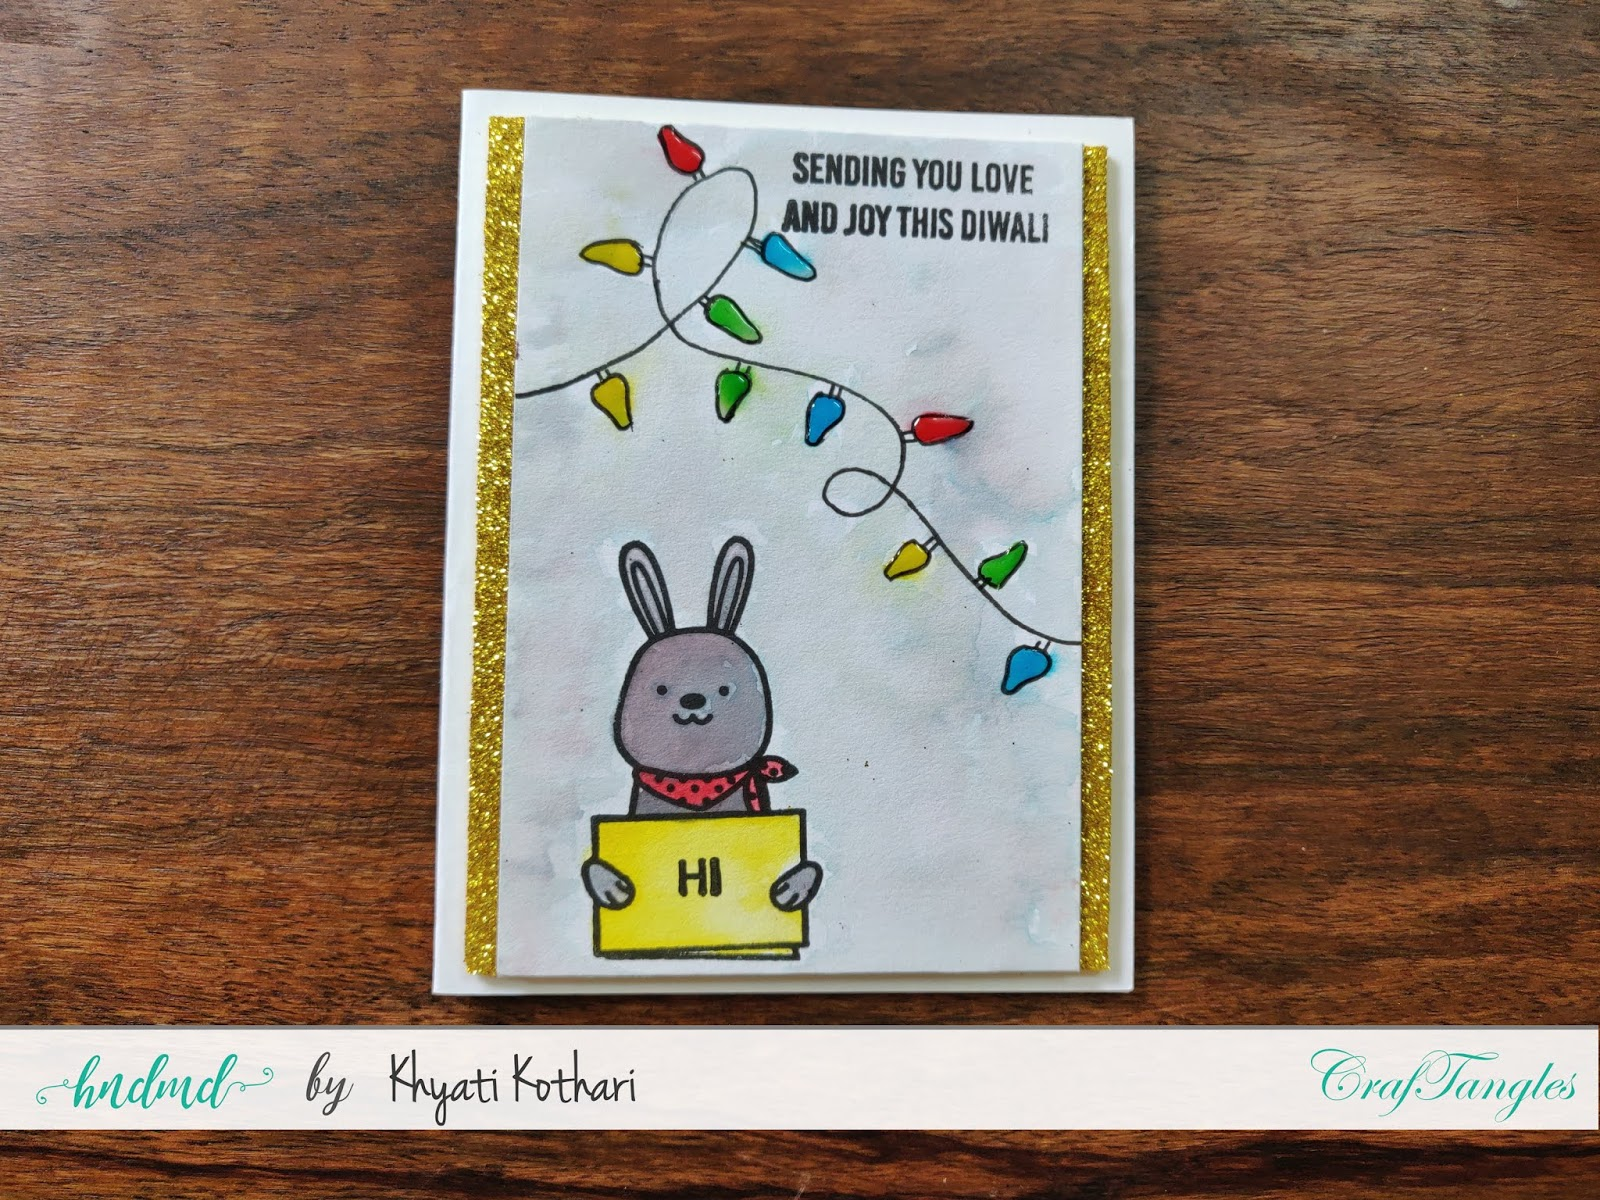 How to Stretch your stamps - Cardmaking video tutorial 11